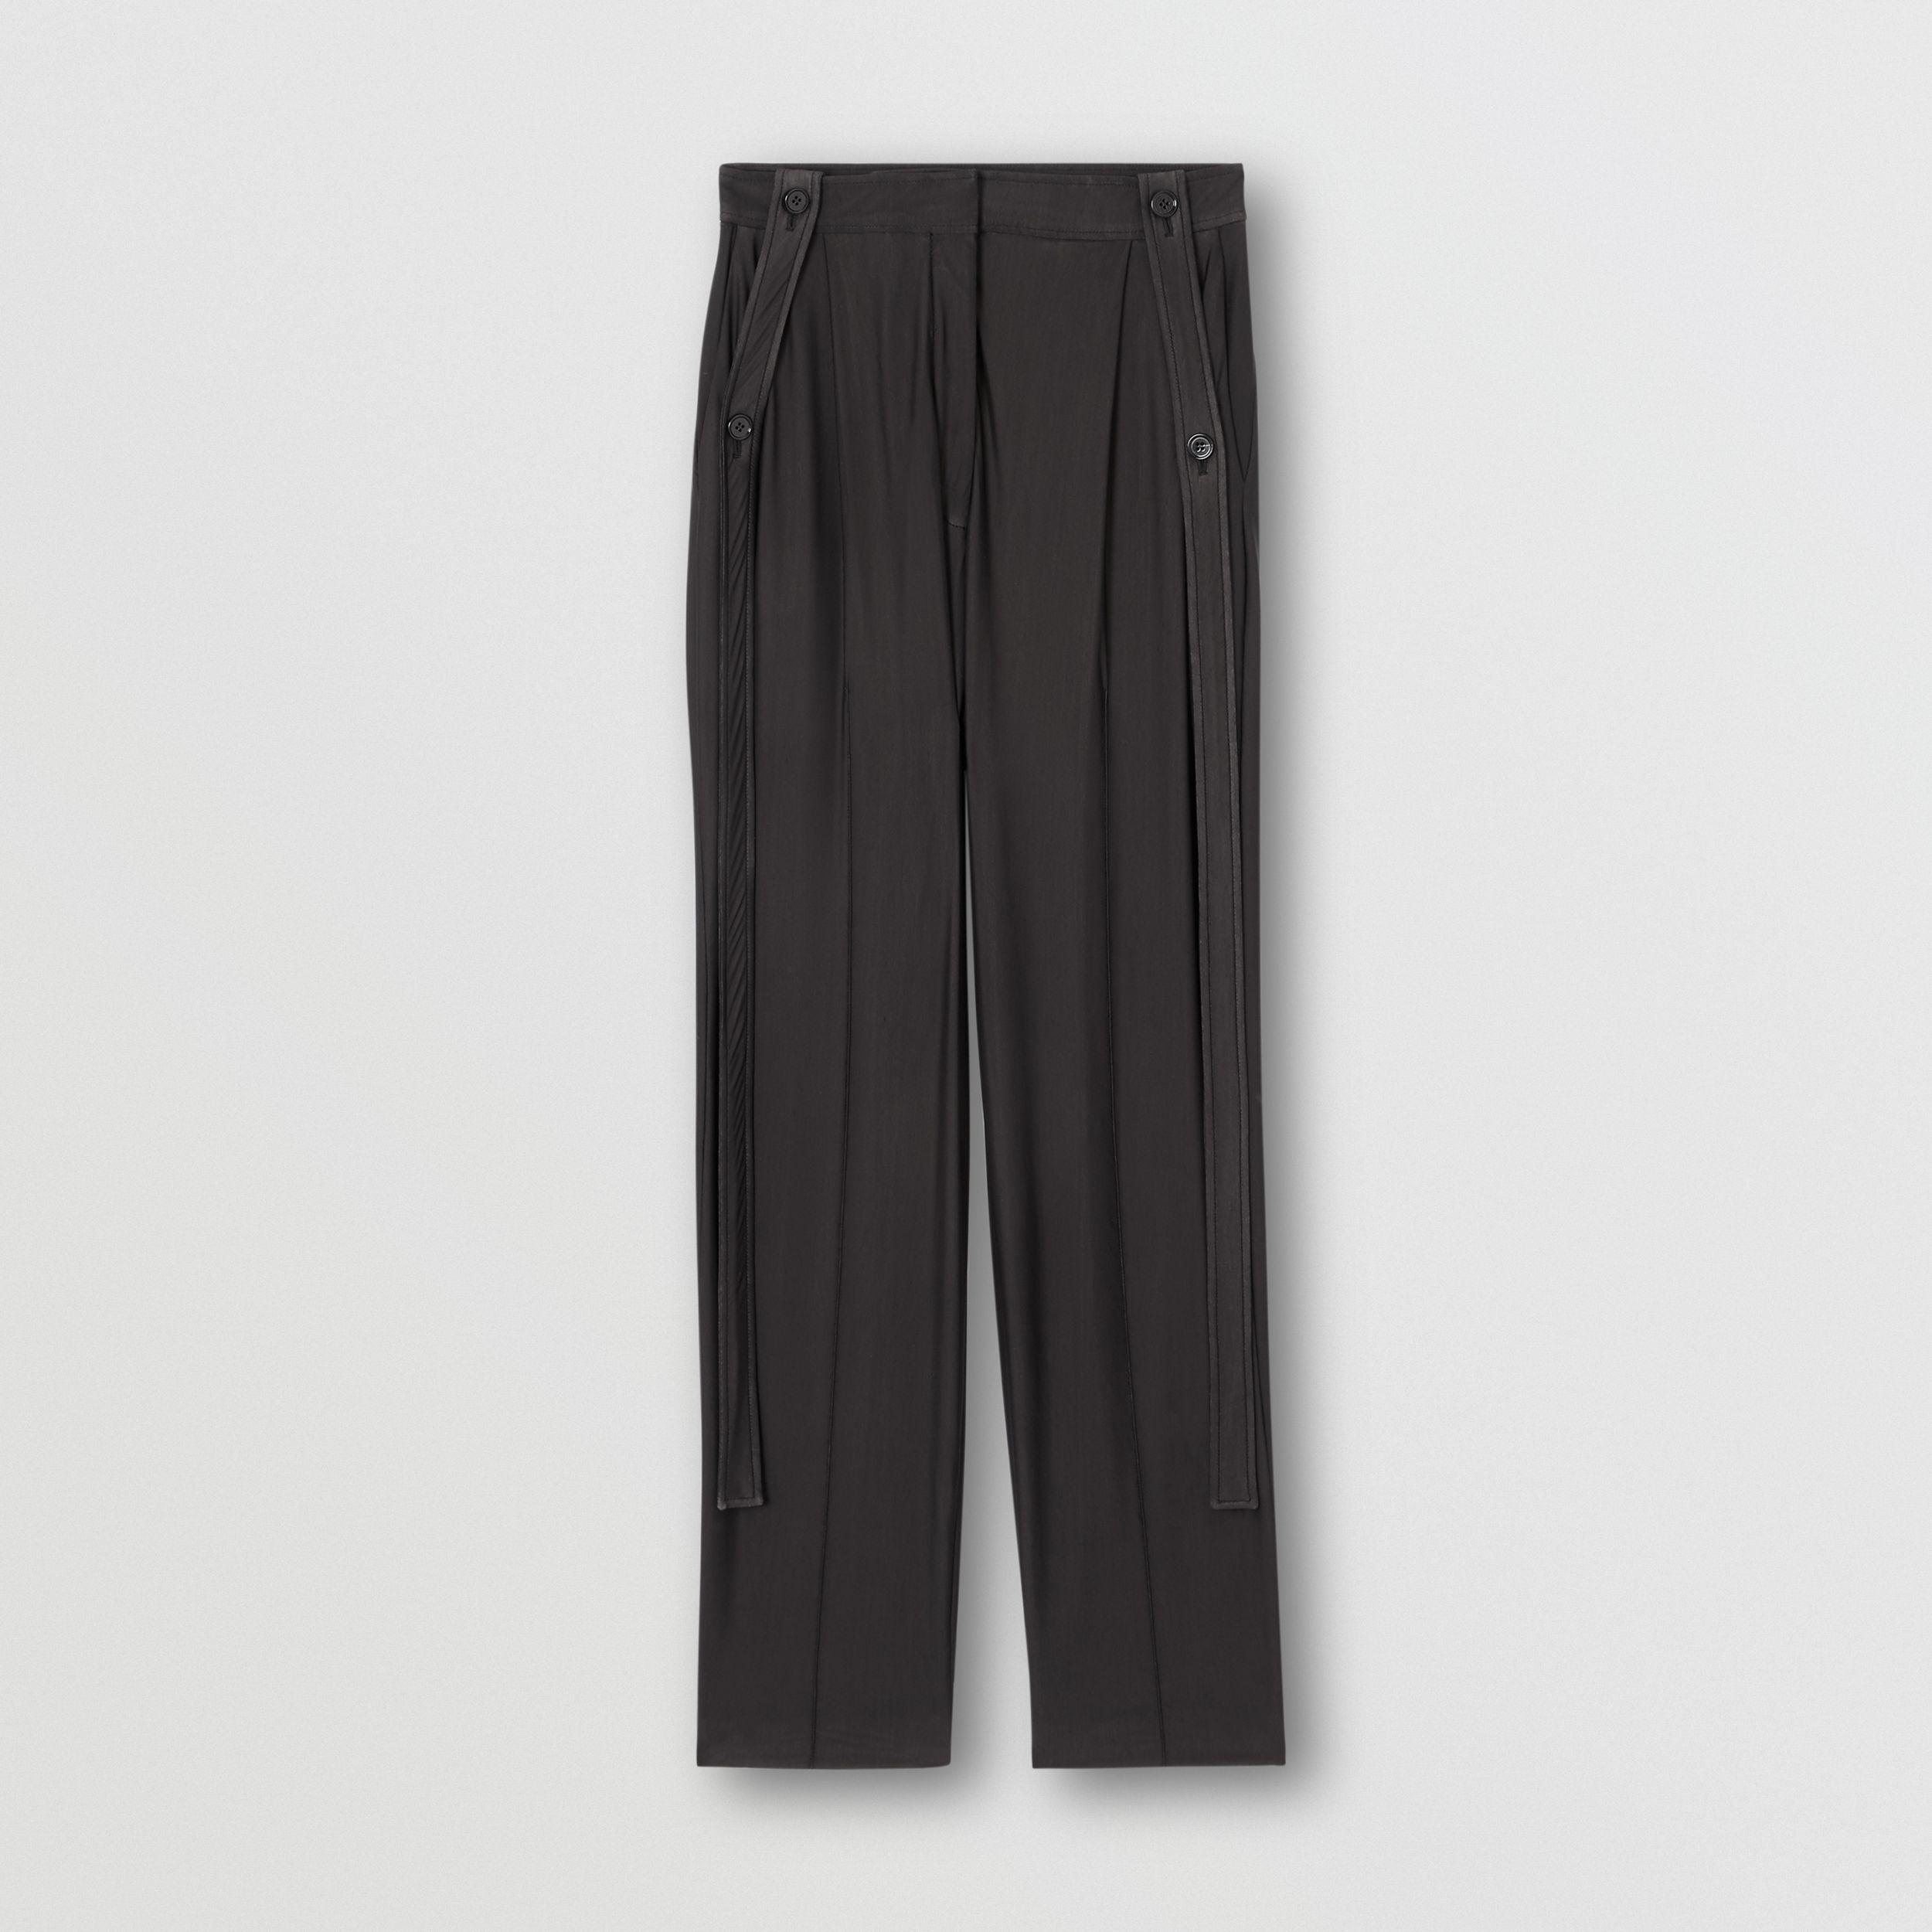 Strap Detail Chiffon and Jersey Tailored Trousers in Black - Women | Burberry - 4